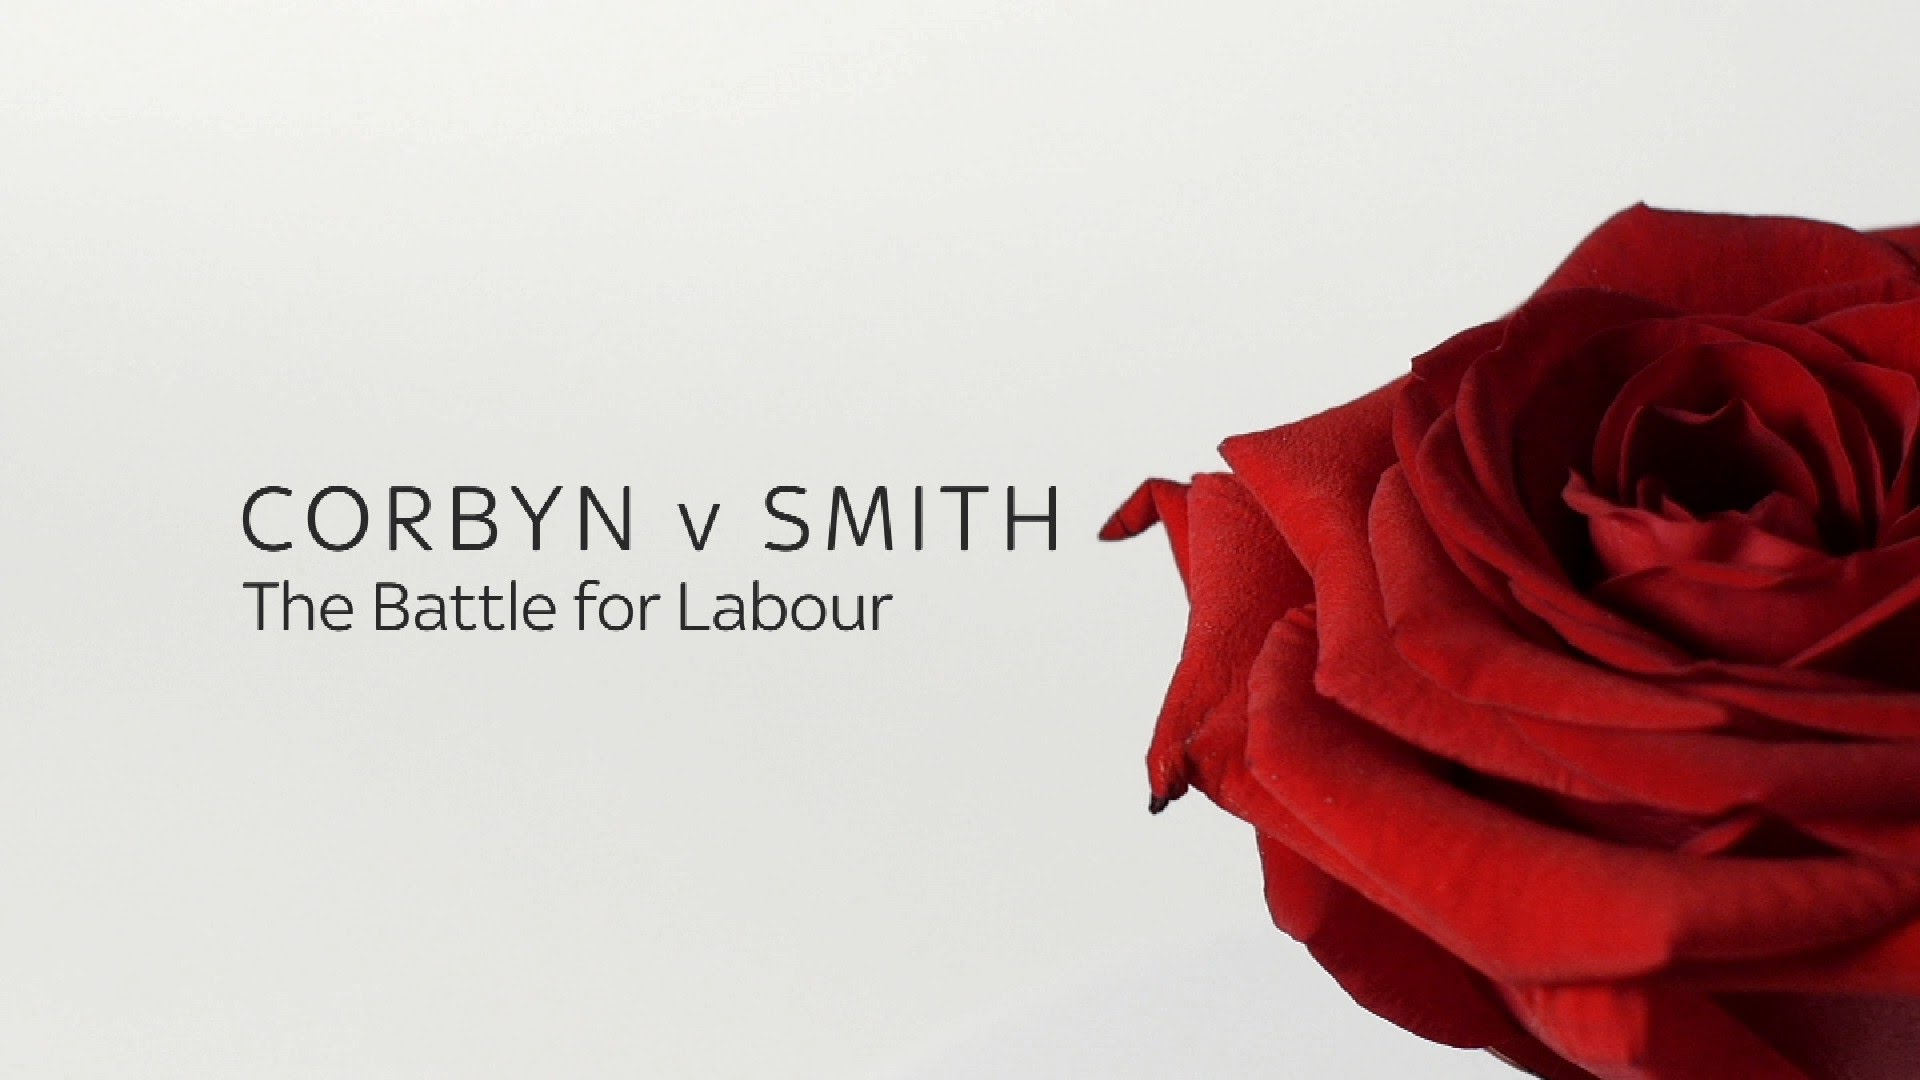 Corbyn v Smith - The Battle For Labour 7